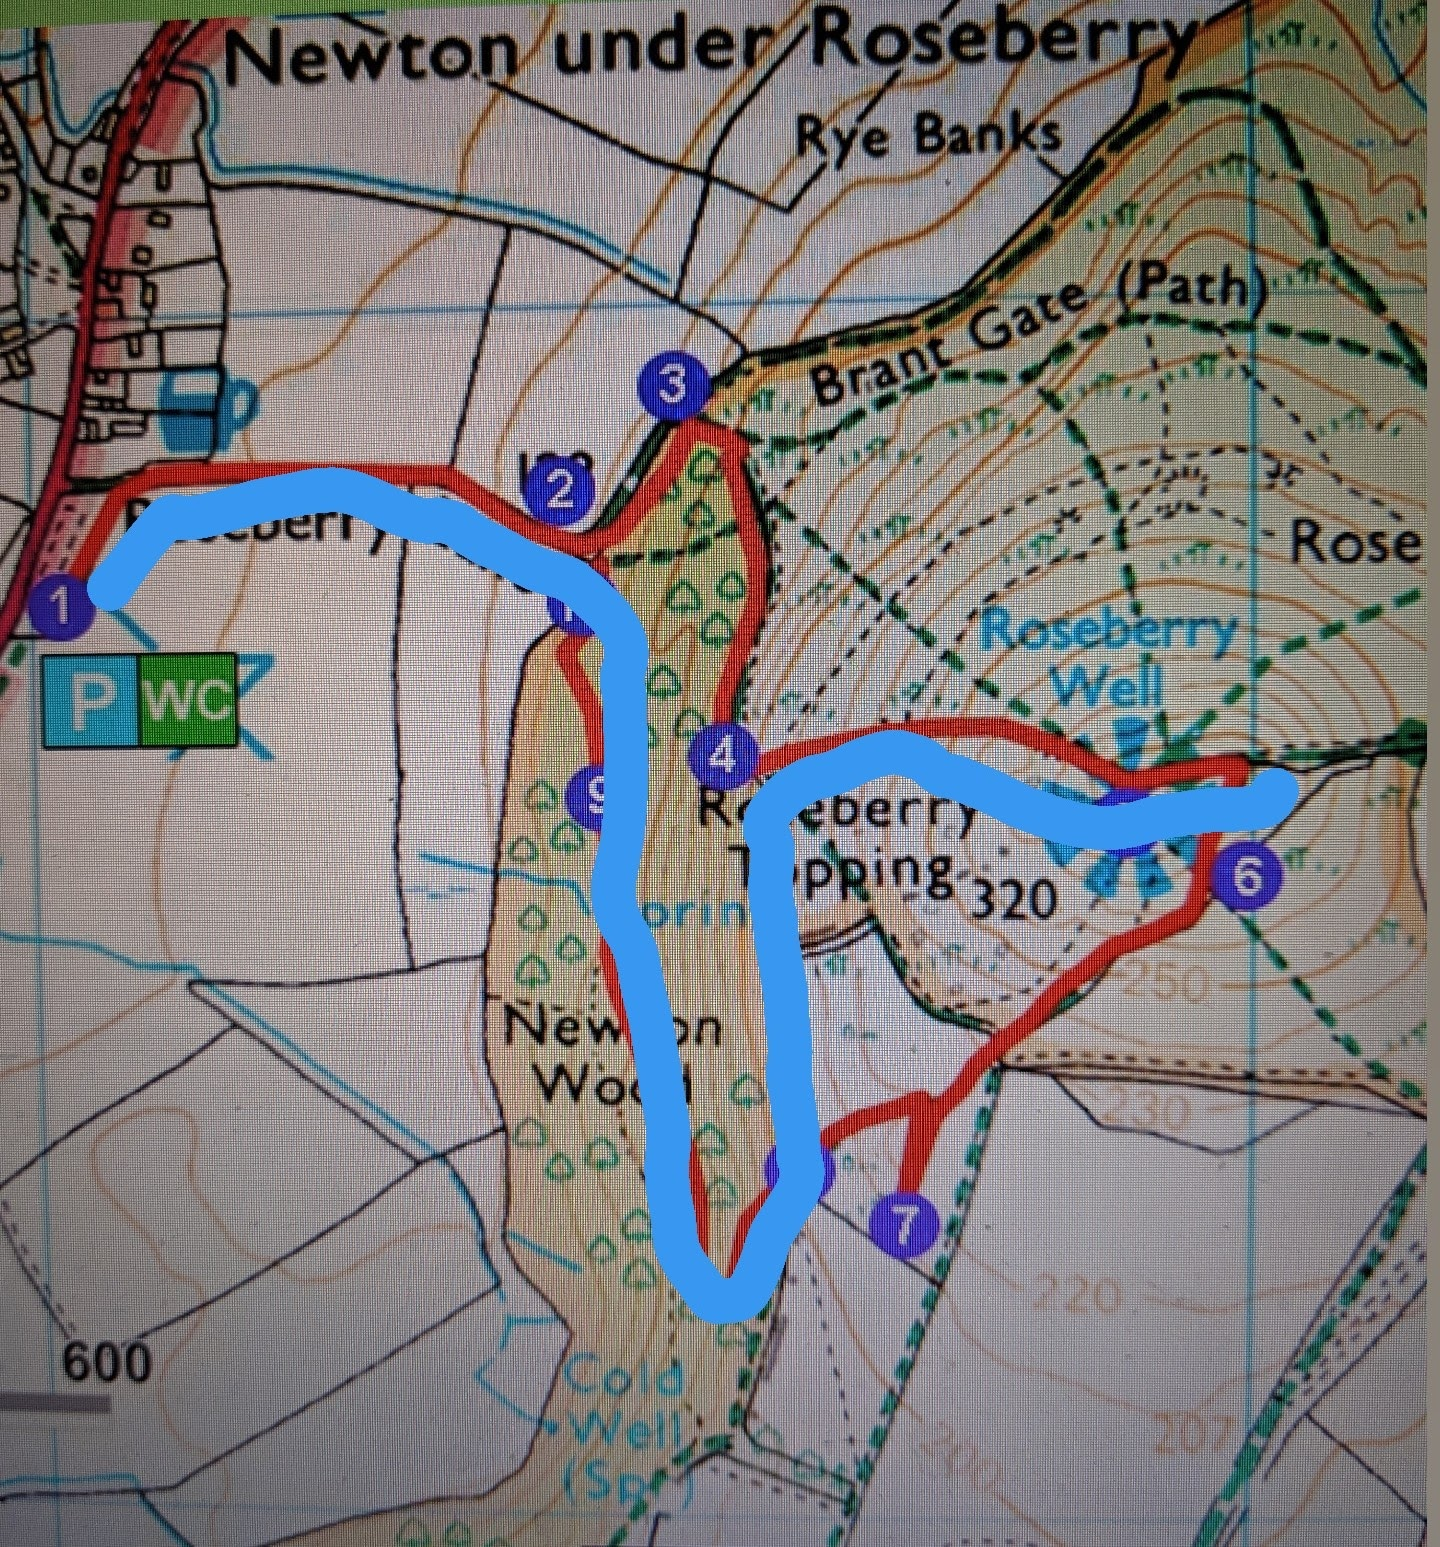 Climbing Roseberry Topping with Kids - our route and map